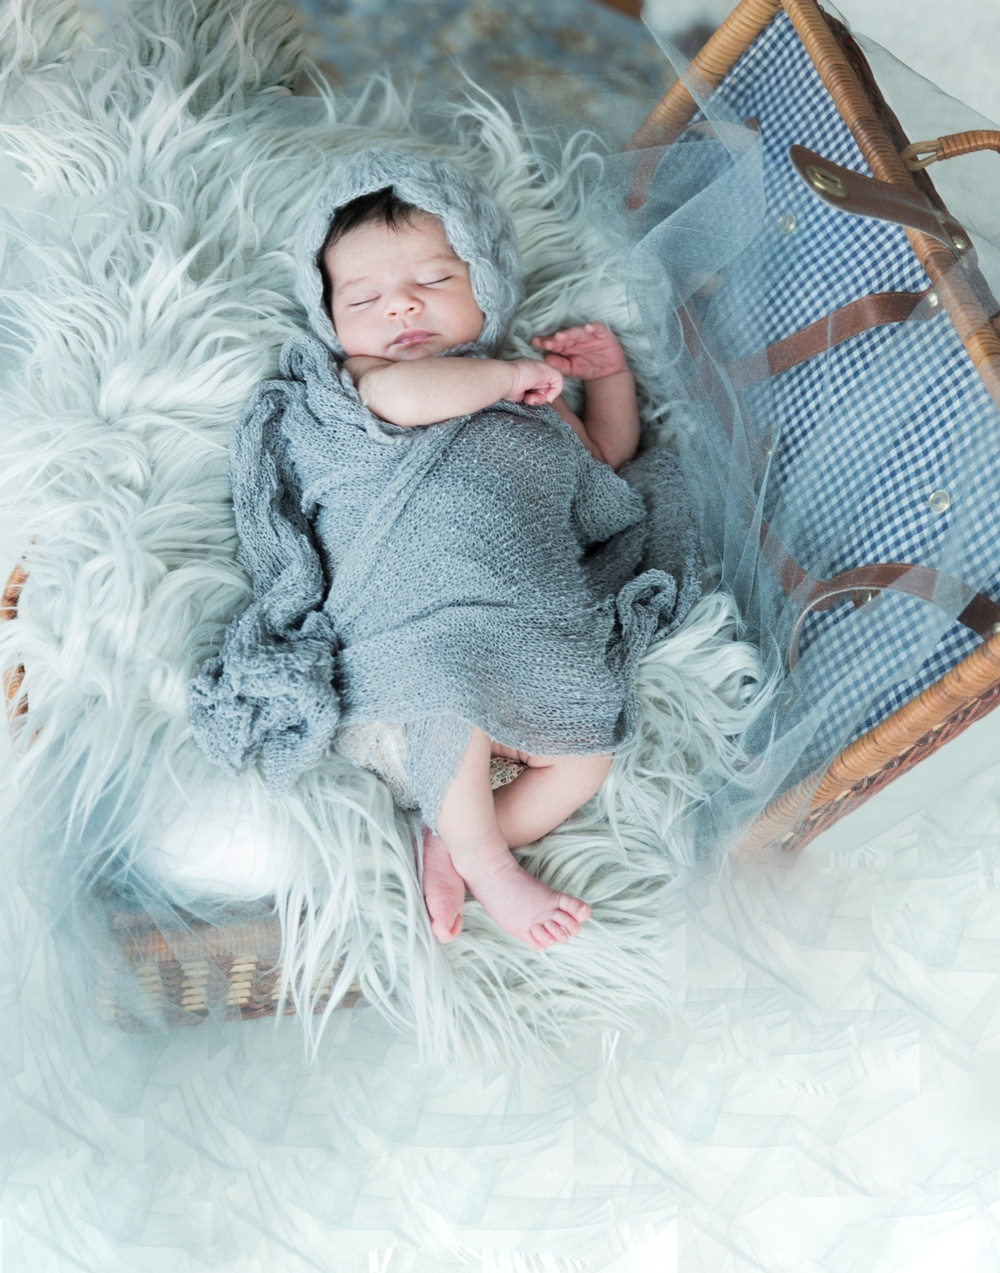 Newborn Session With Baby Leia - Eve Parisa Photography.jpg